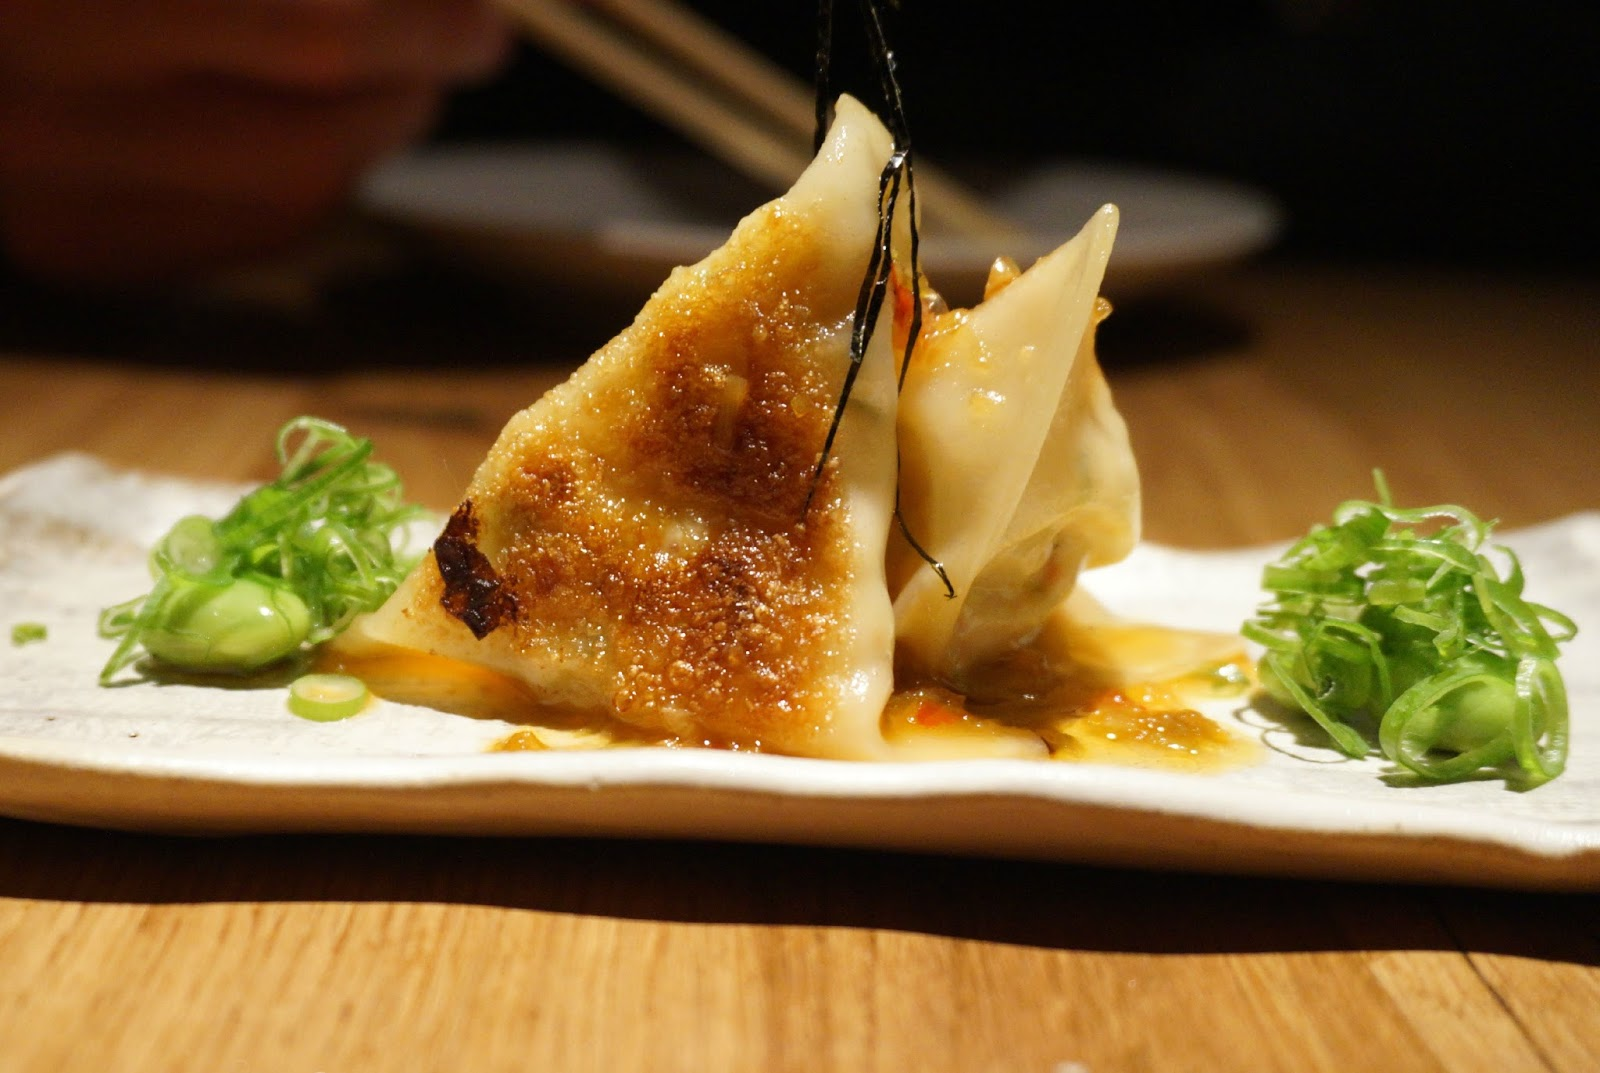 crab and crayfish gyoza dumplings and edamame